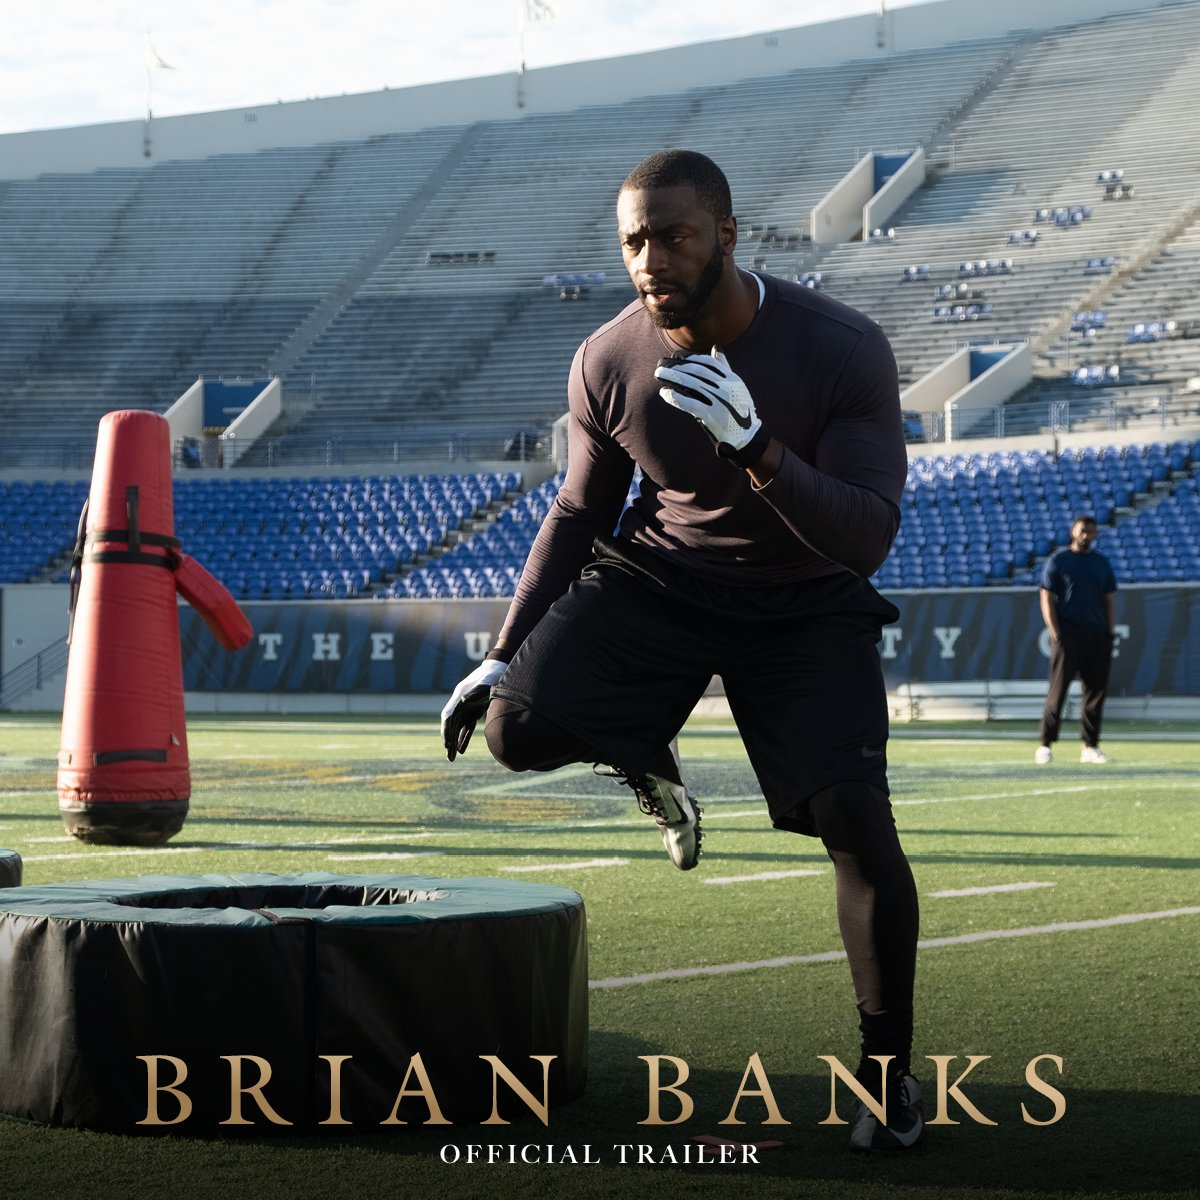 When justice failed, his courage prevailed. Based on a true story, watch the official trailer for #BrianBanksMovie. In theaters this August.